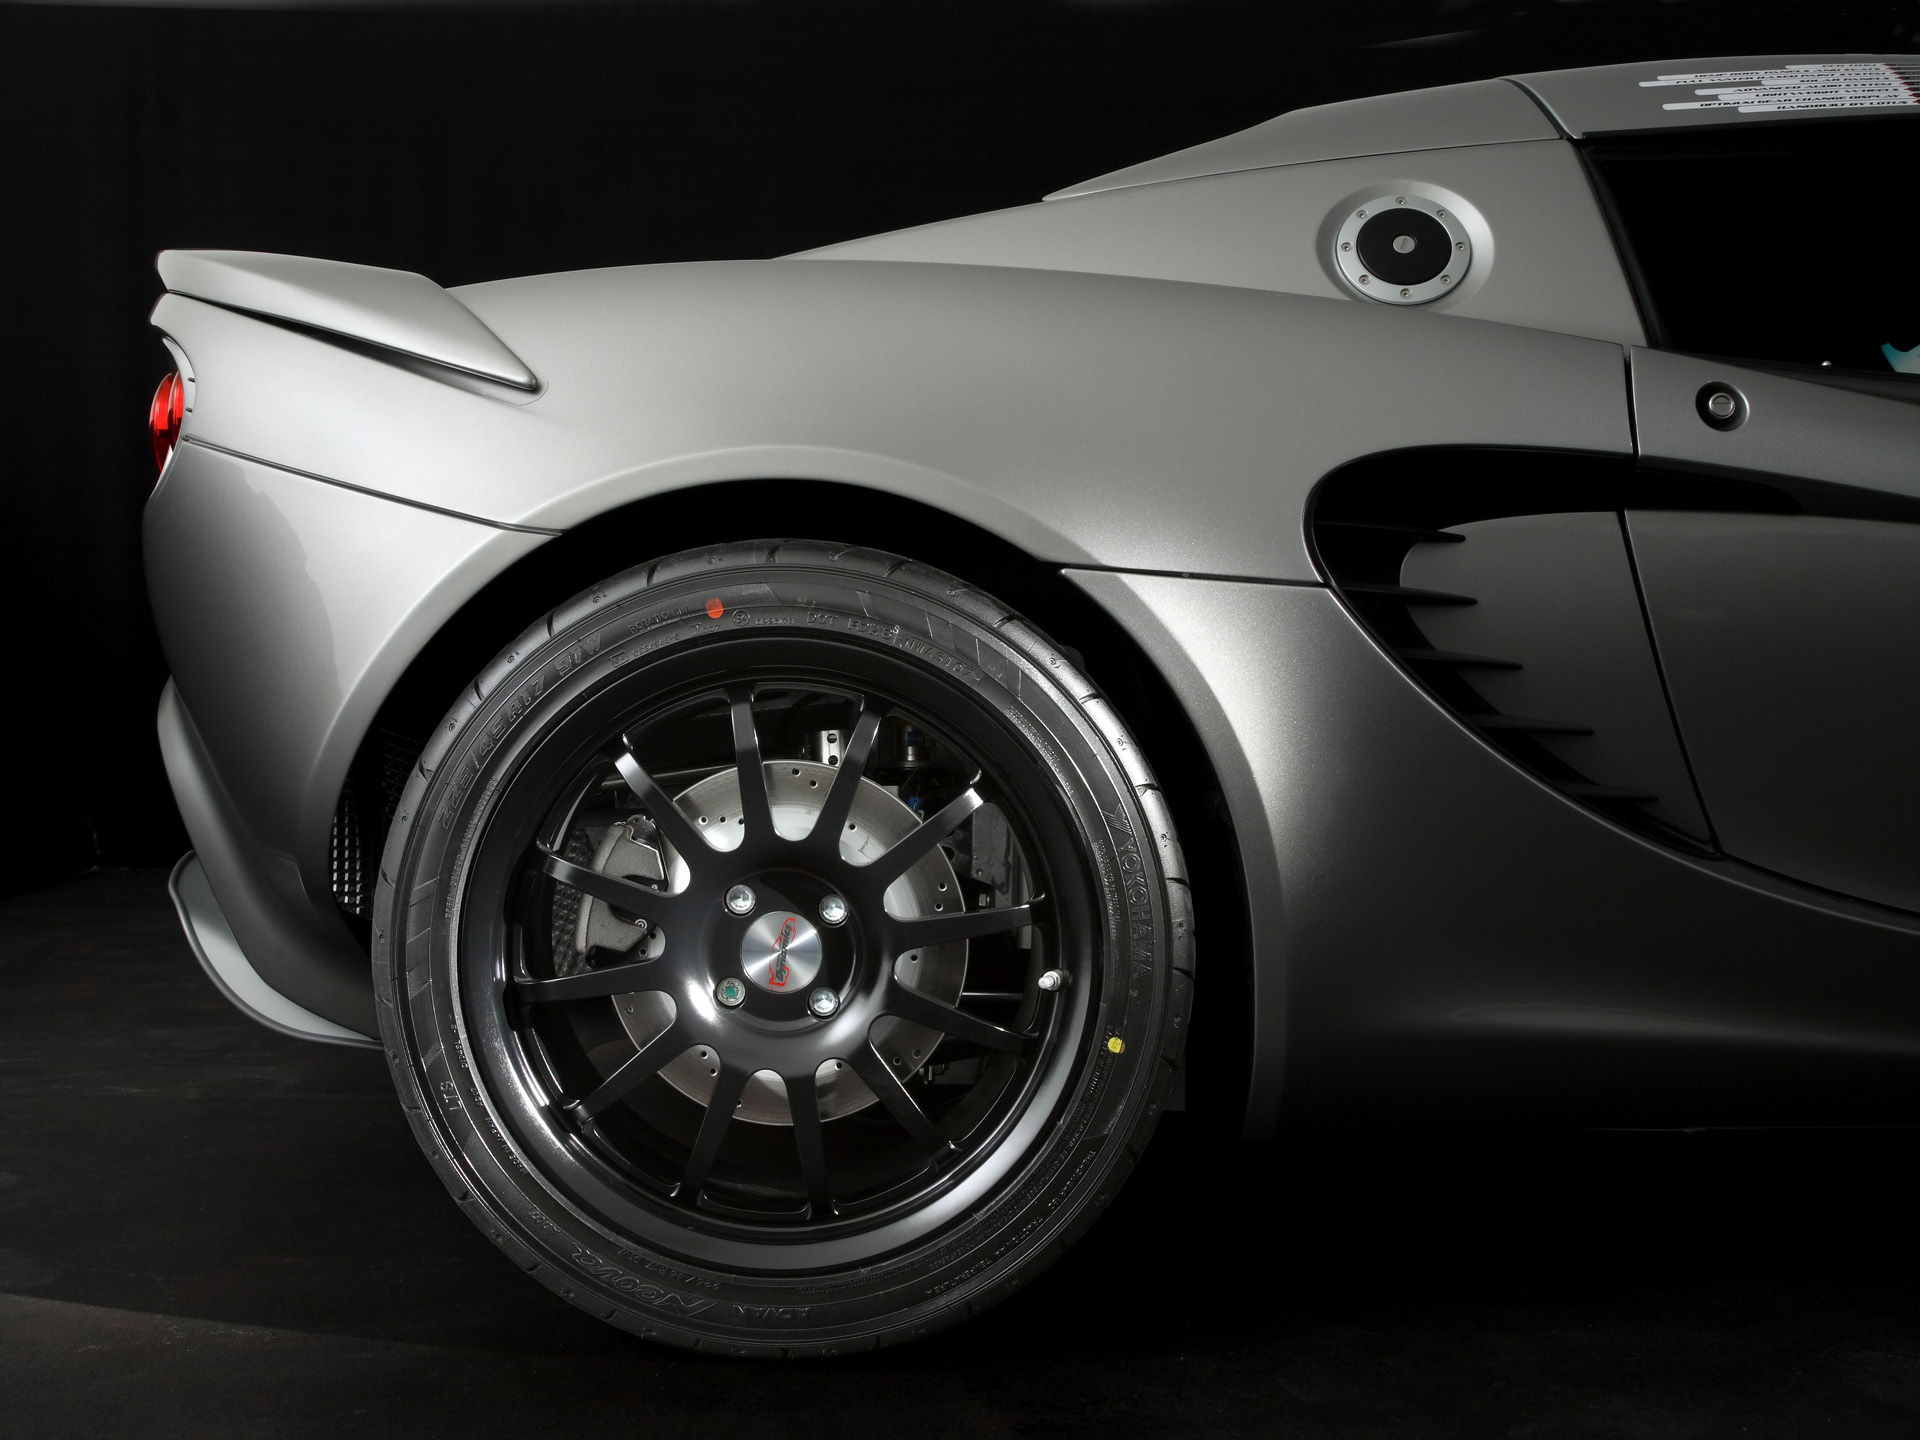 2008-lotus-eco-elise-rear-wheel-1920x1440